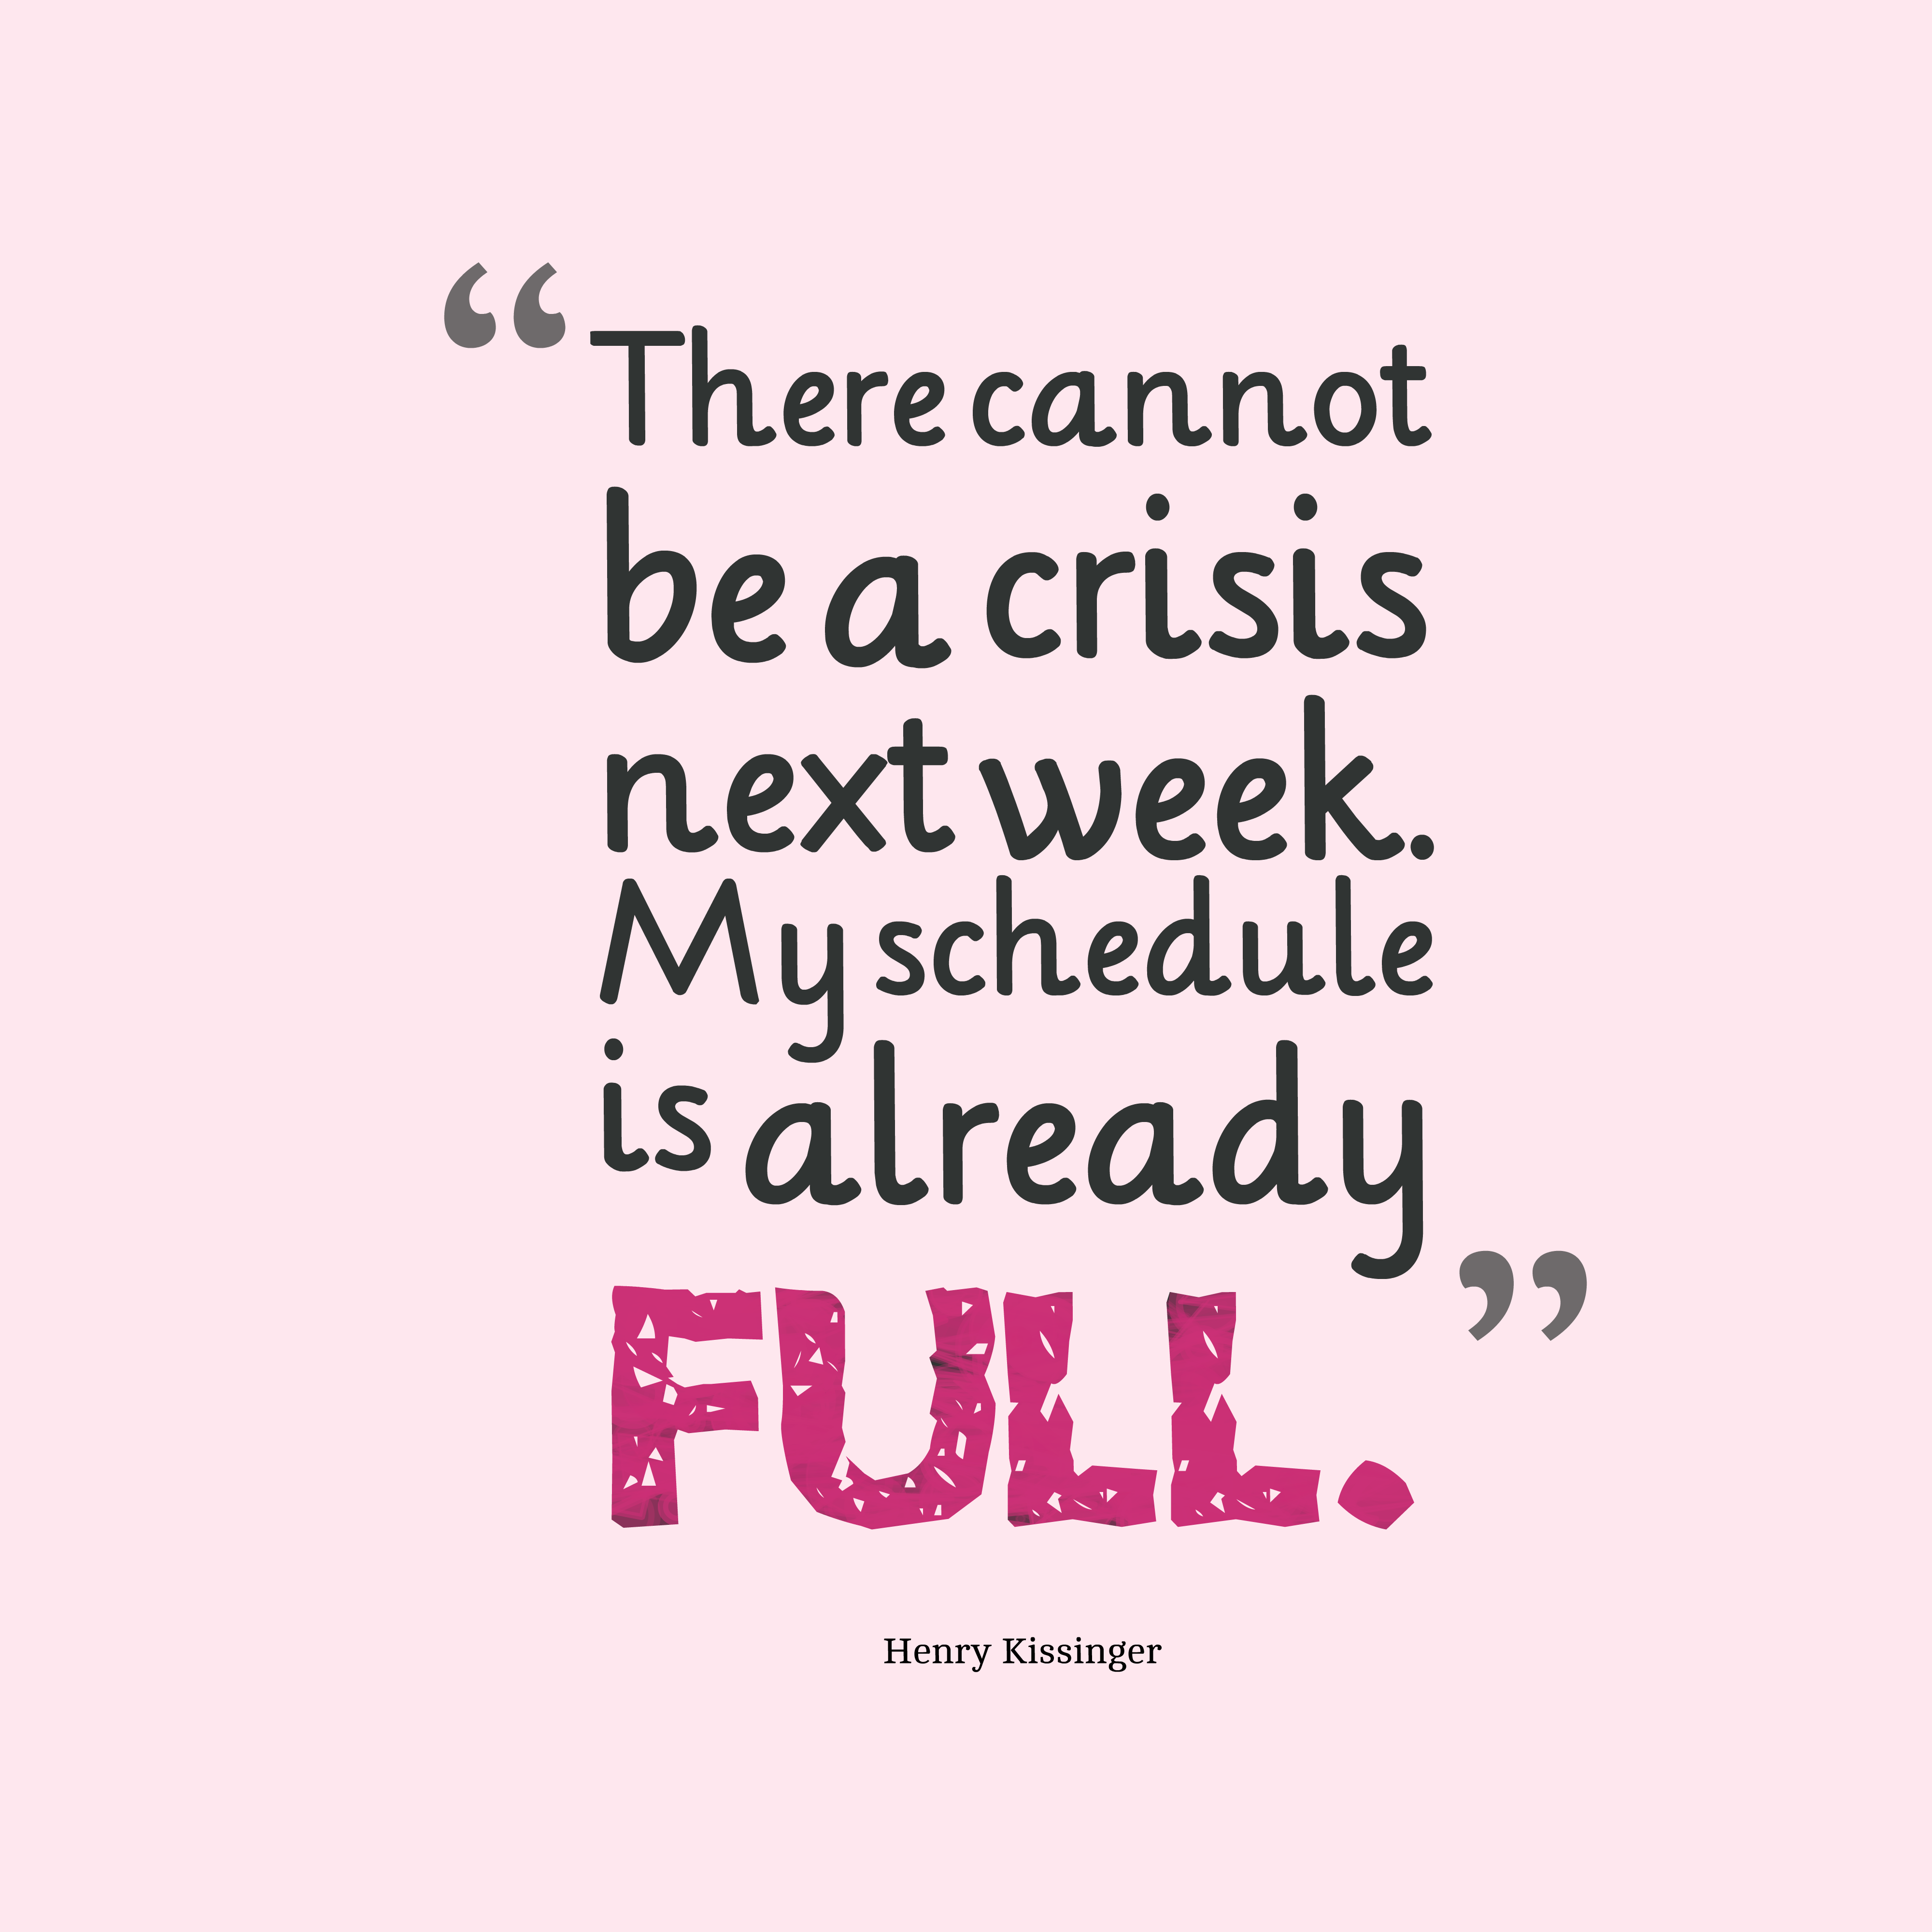 Quotes image of There cannot be a crisis next week. My schedule is already full.